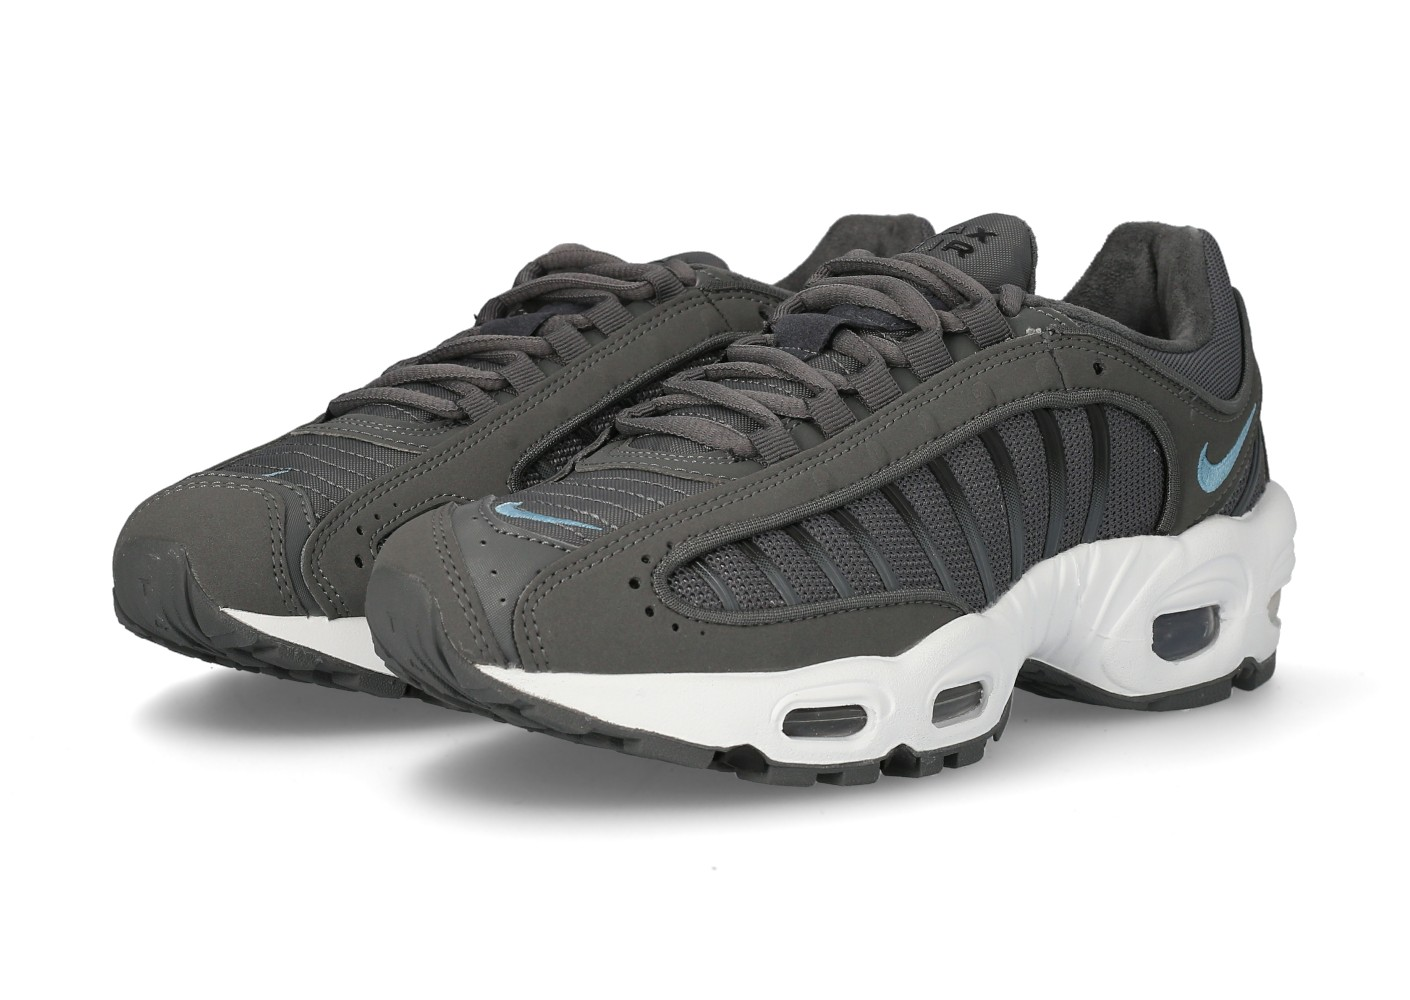 Nike Air Max Tailwind IV grise et bleue Chaussures Baskets